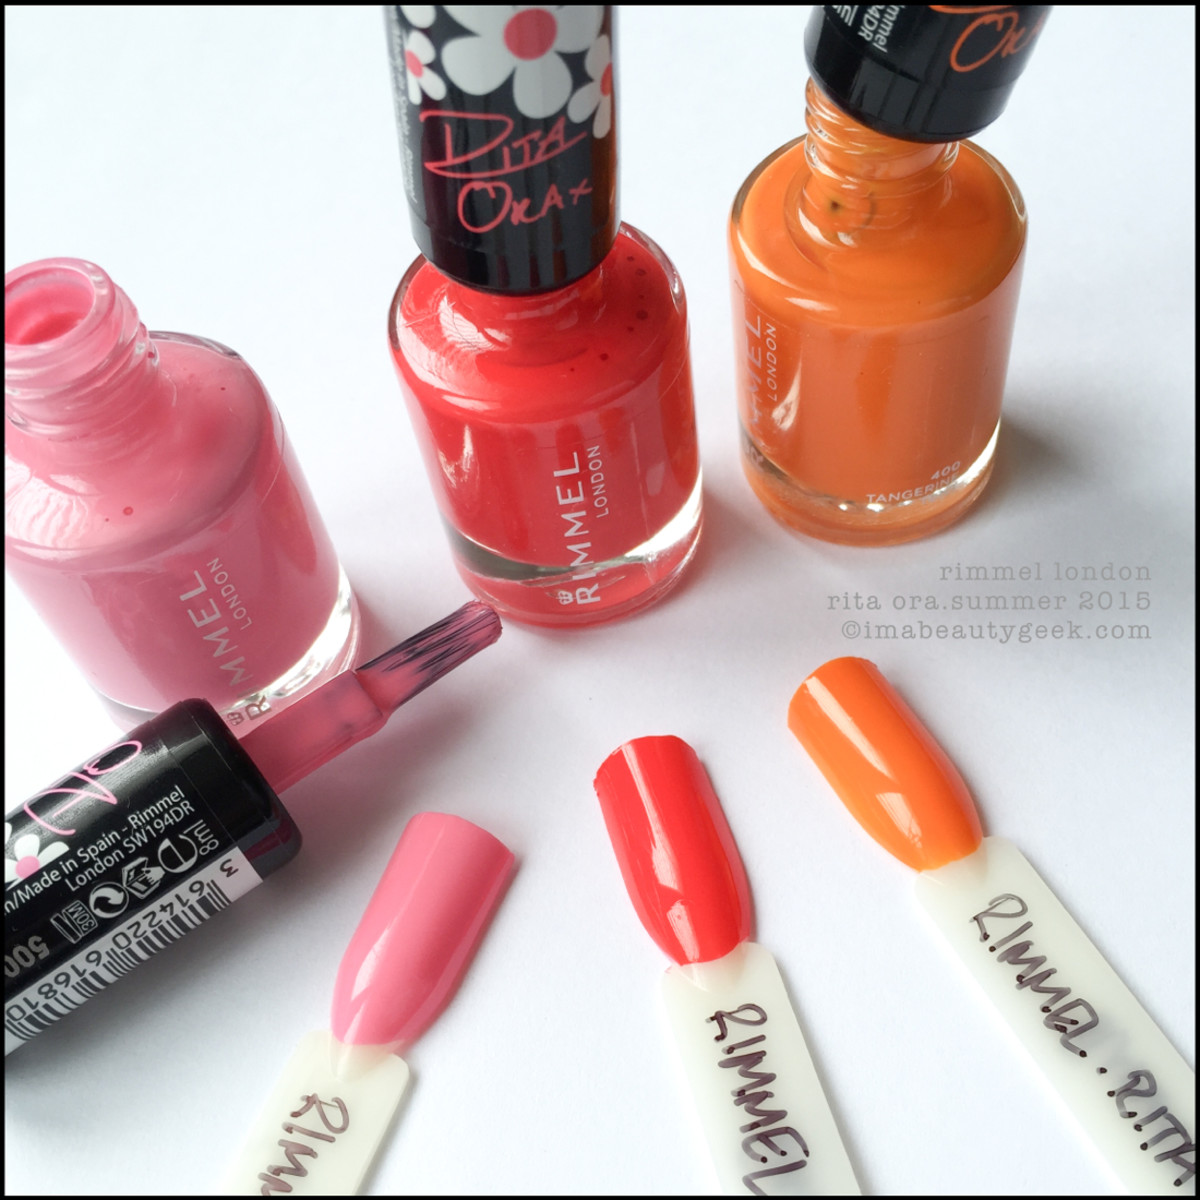 Rimmel Rita Ora Summer 2015 Collection Swatches